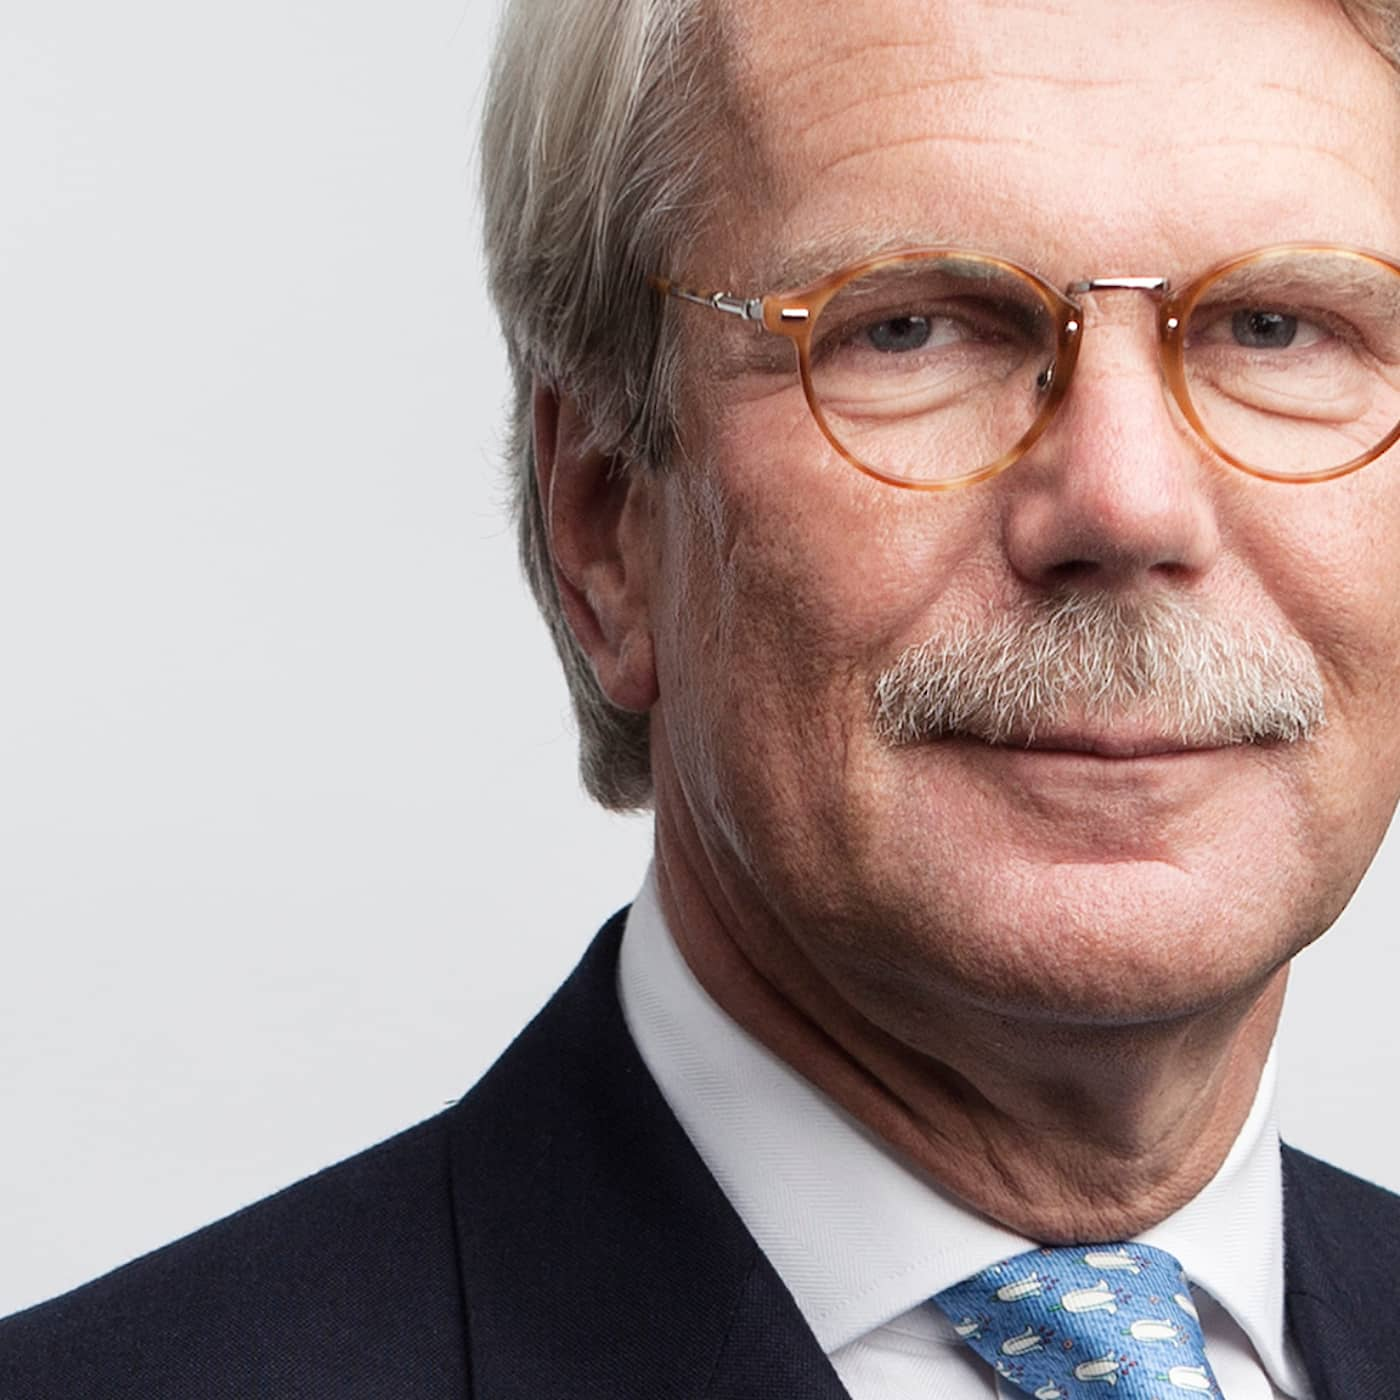 Nalle Wahlroos